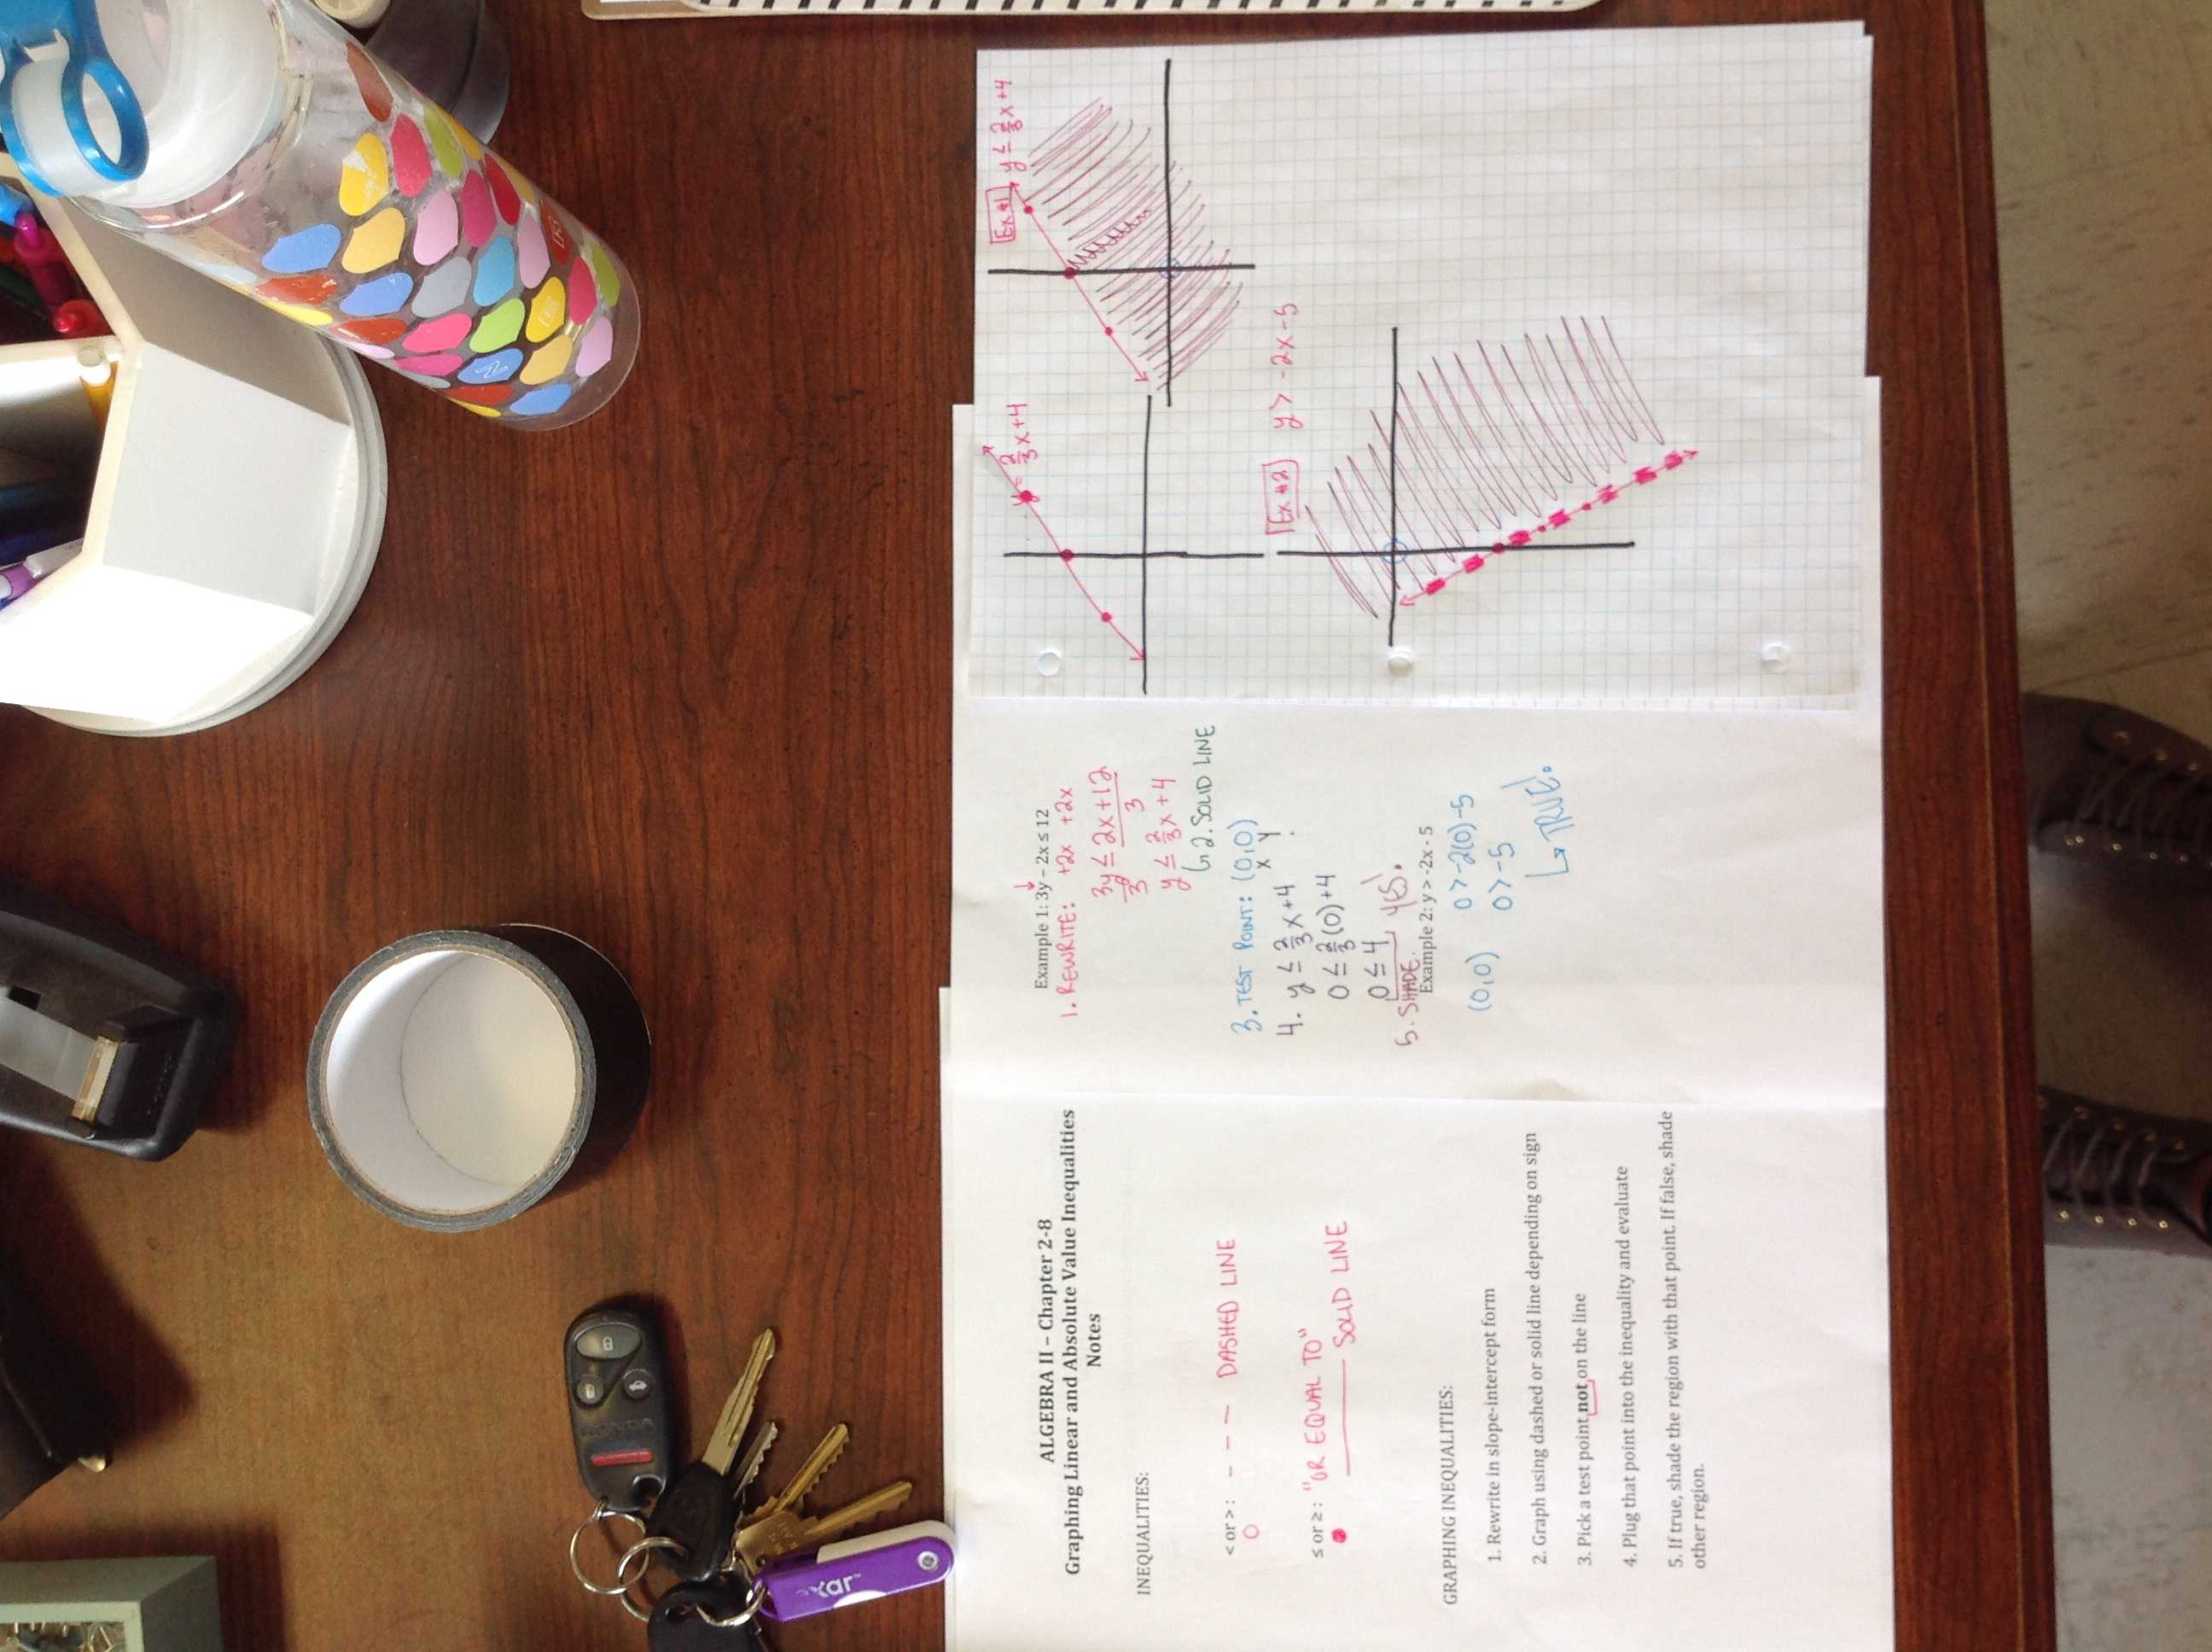 Analyzing Graphs Worksheet or Human Rights for Precarious Workers the Legislative University